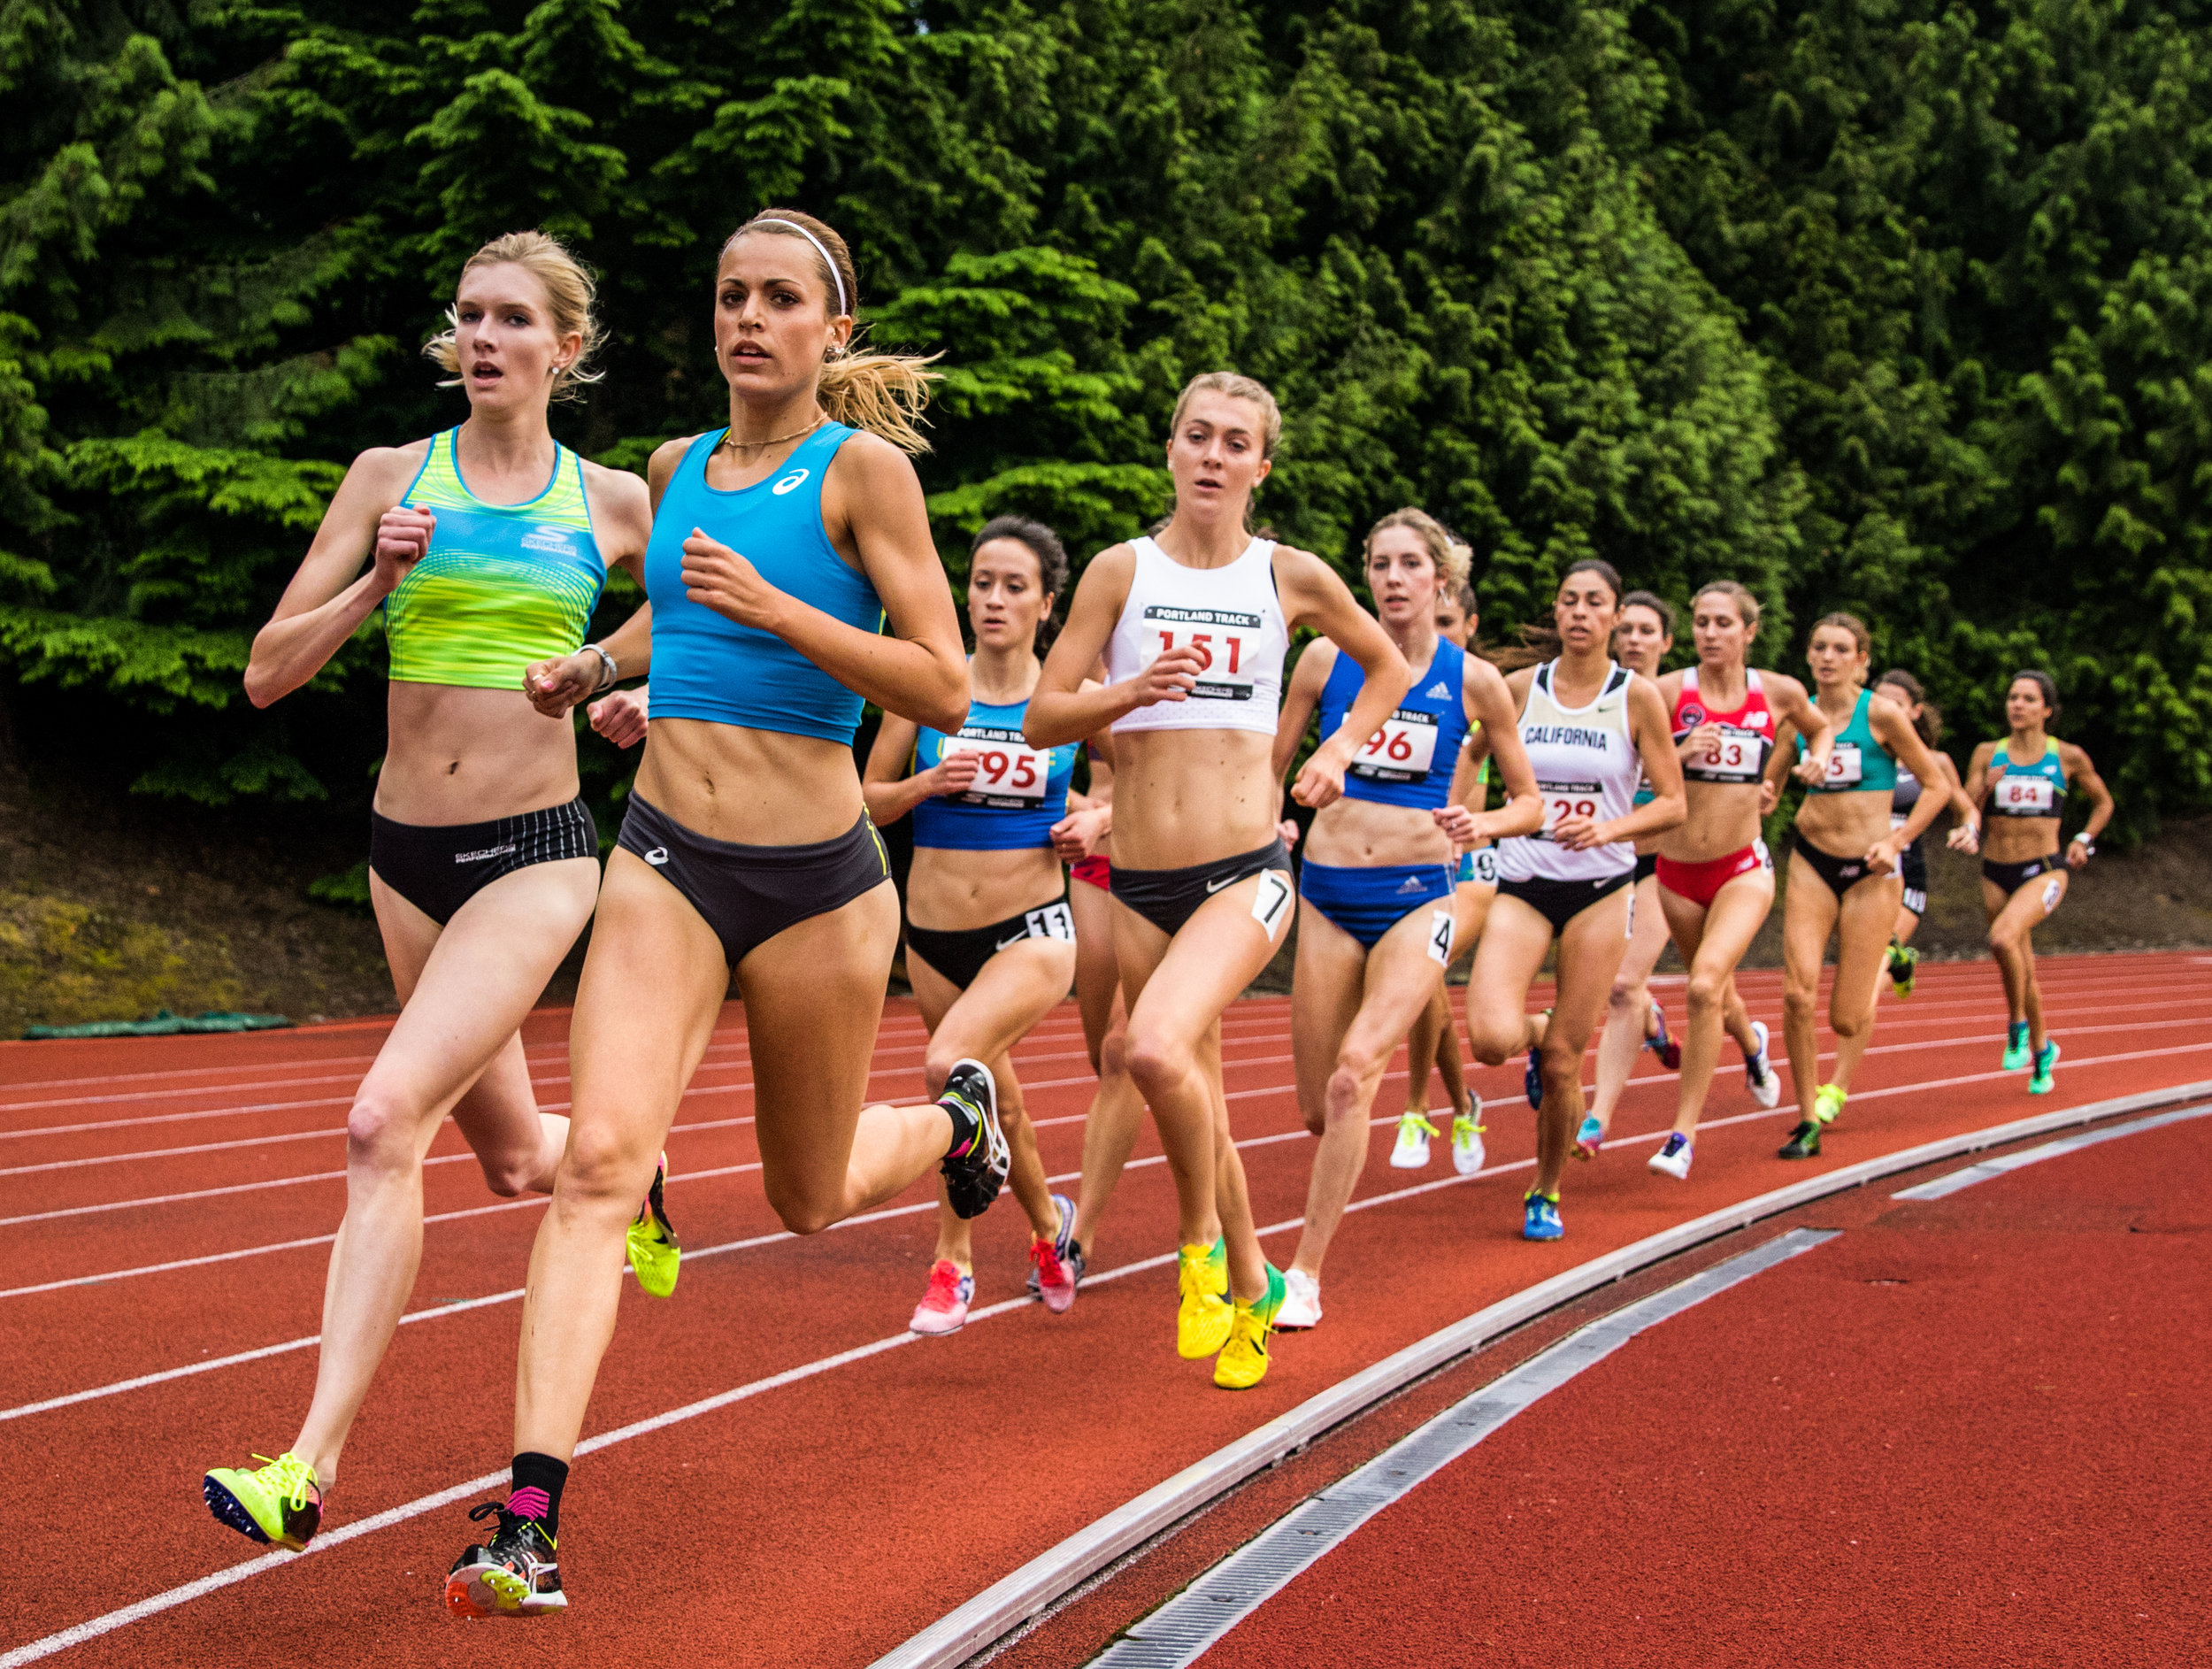 Eleanor Fulton (green/blue top) of High Performance West leads the charge as the rabbit at the 2017 Stumptown Twilight in the High Performance Women's 1500m.